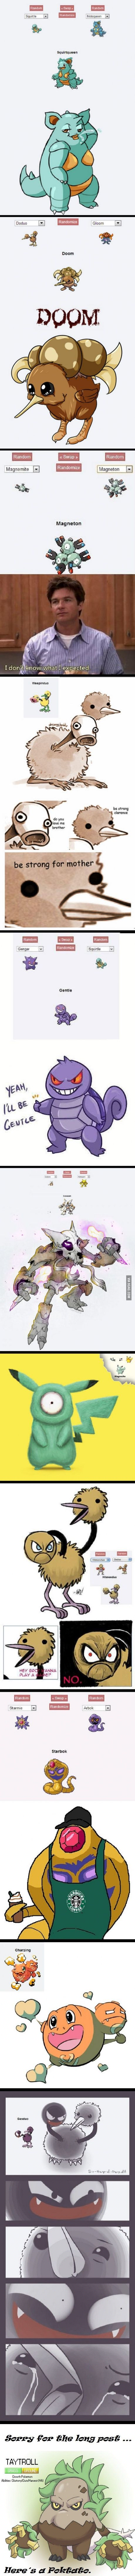 11 creepiest Pokémon Fusions ever